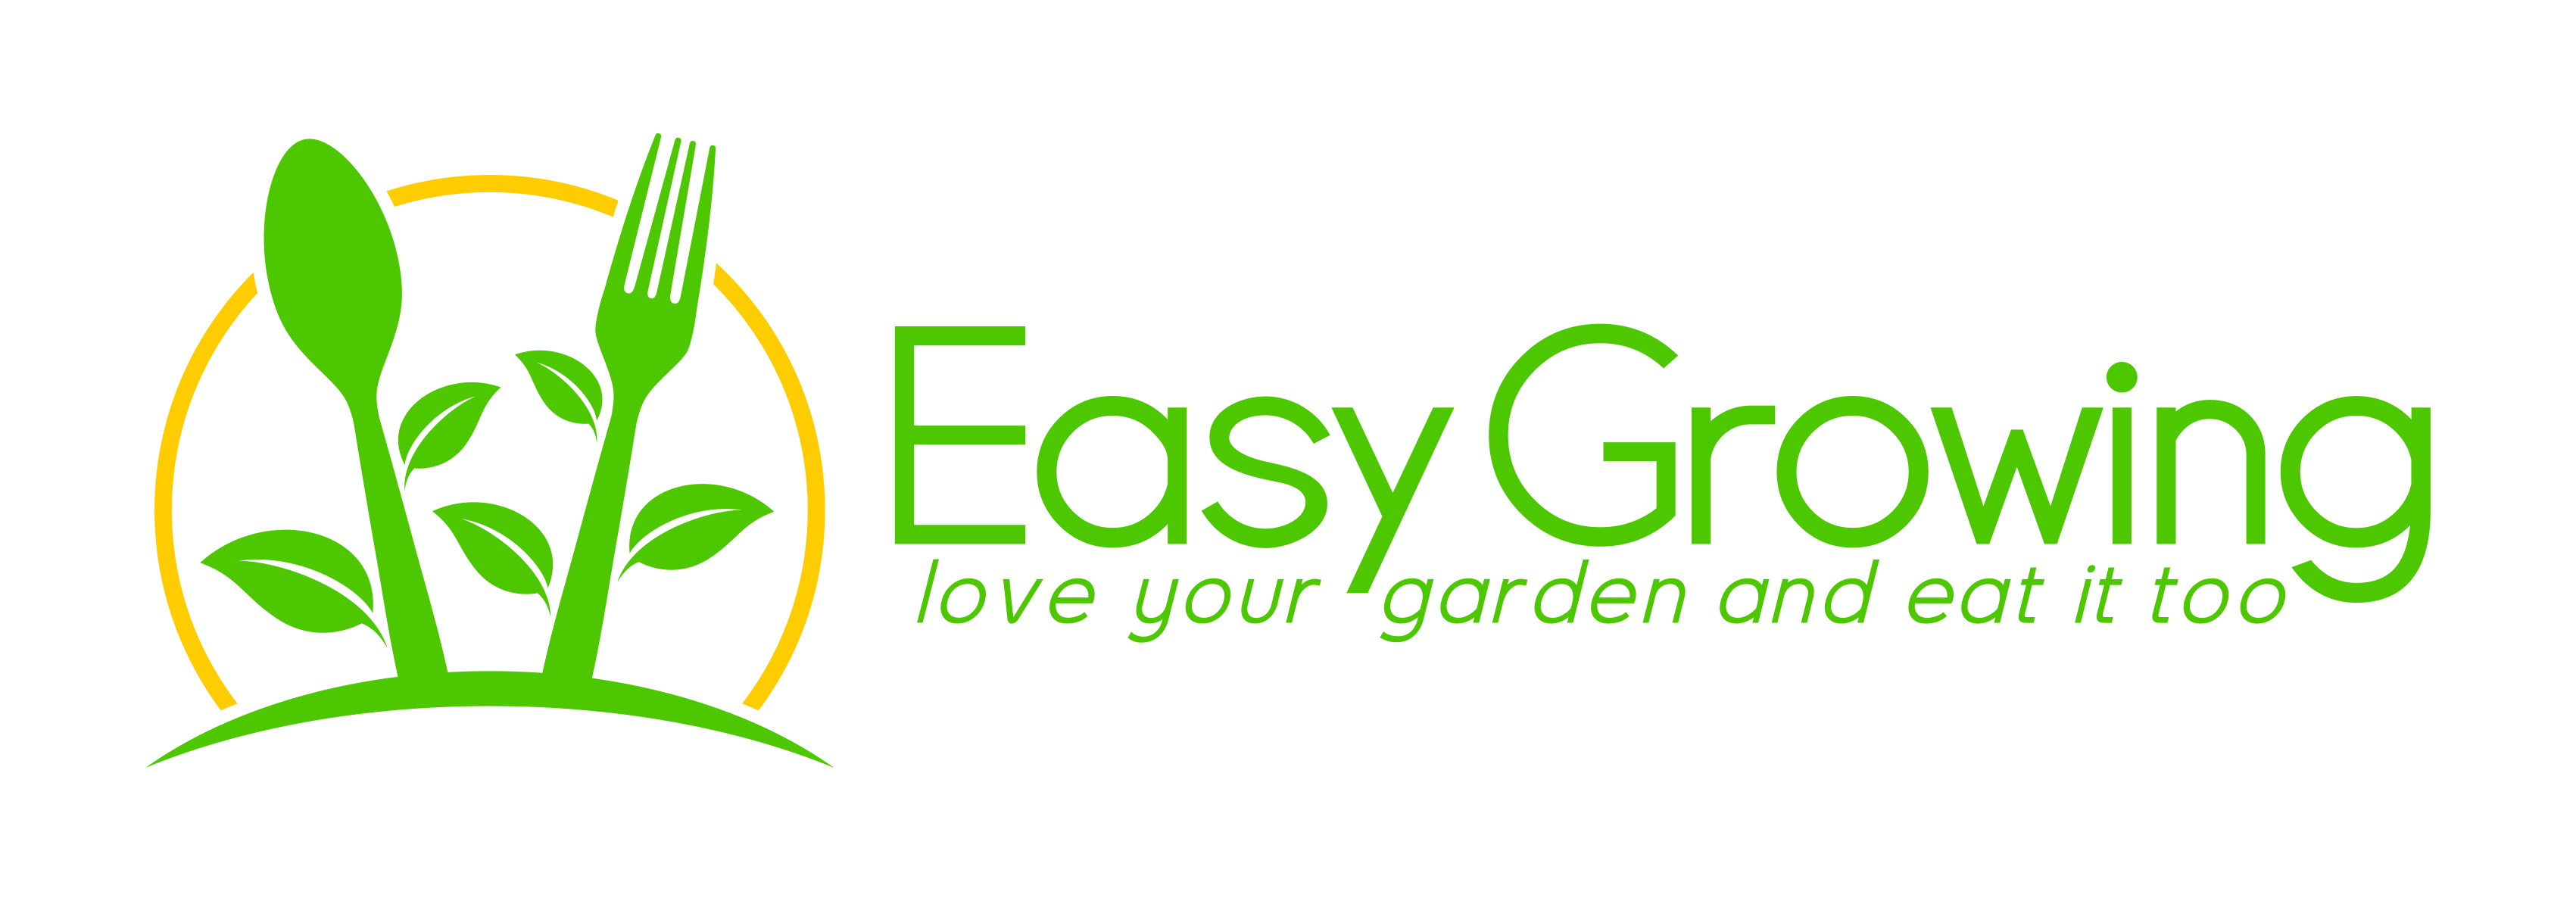 Create a simply lovely logo for Easy Growing (love your garden and eat it too)